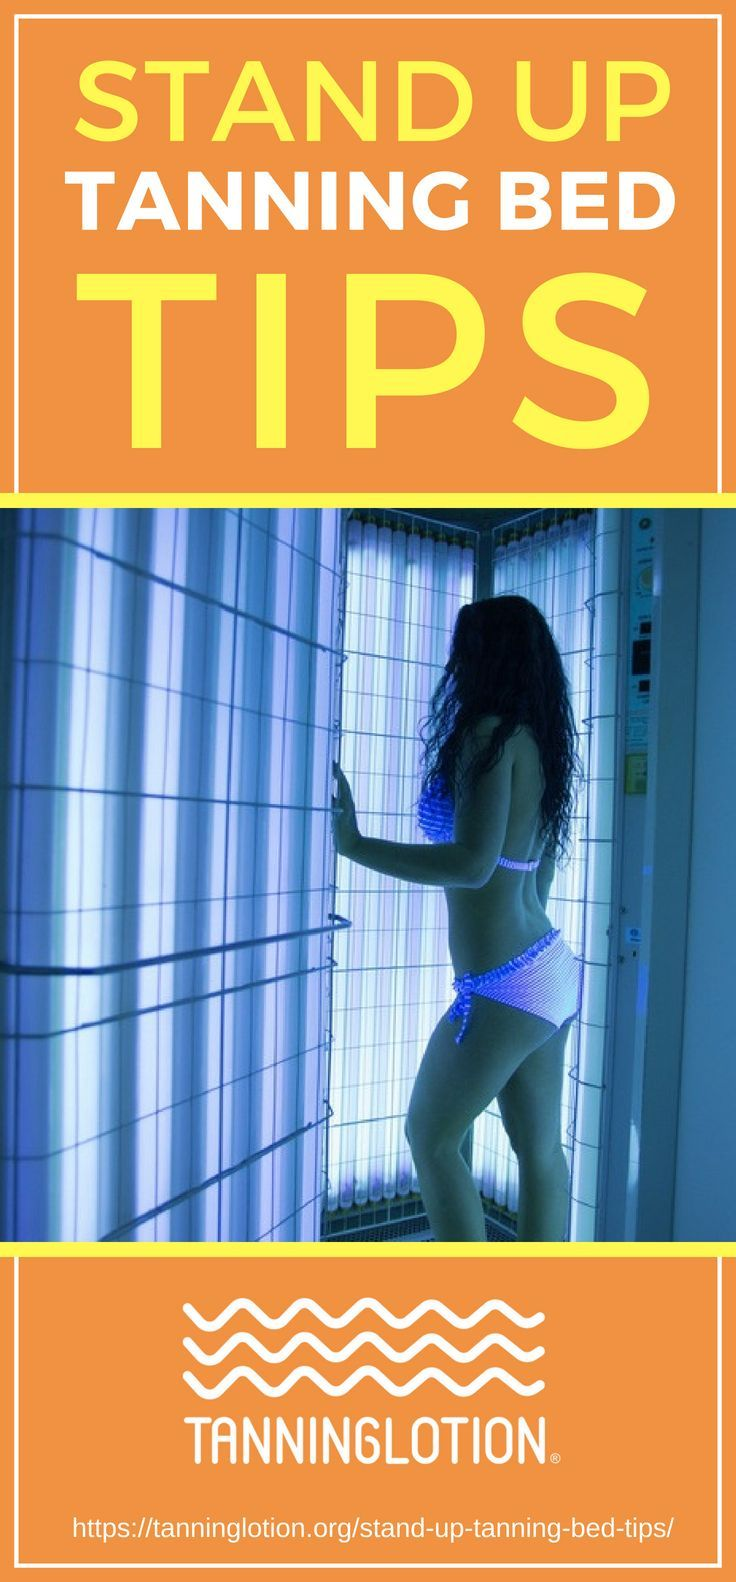 Stand Up Tanning (With images) Tanning bed tips, Tanning